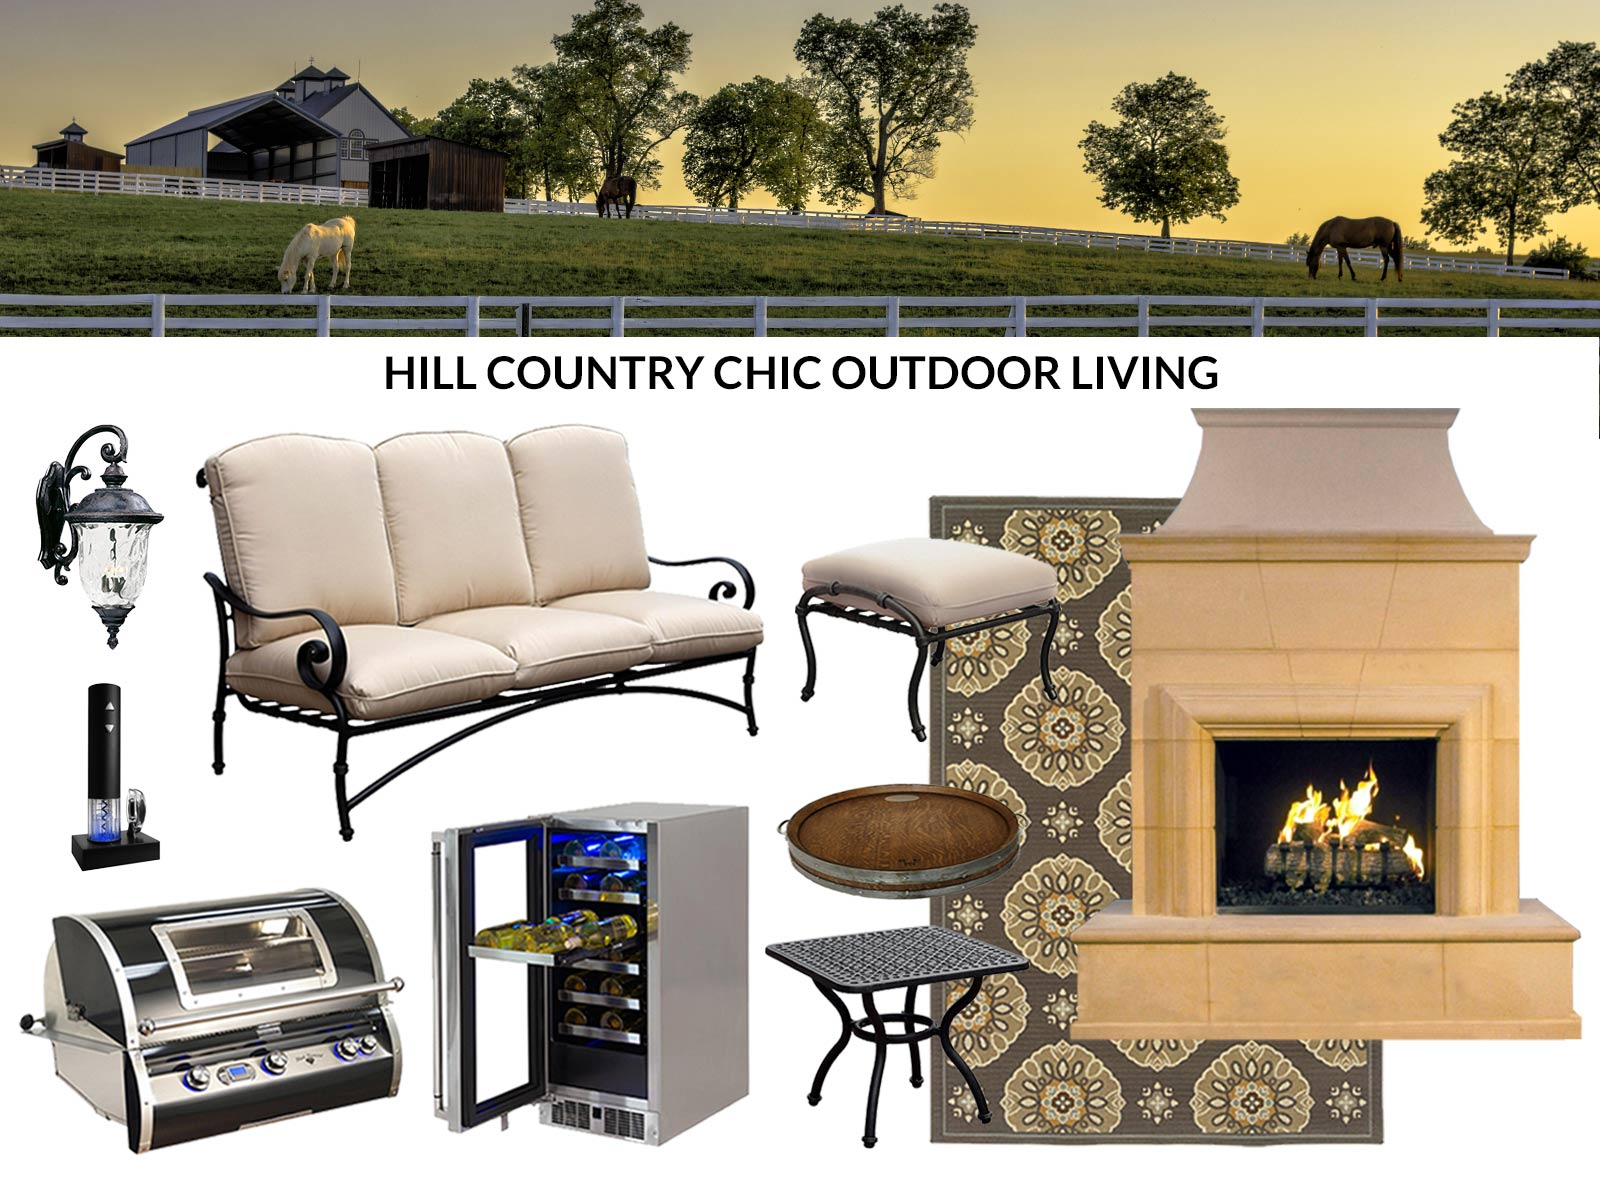 Hill Country Chic